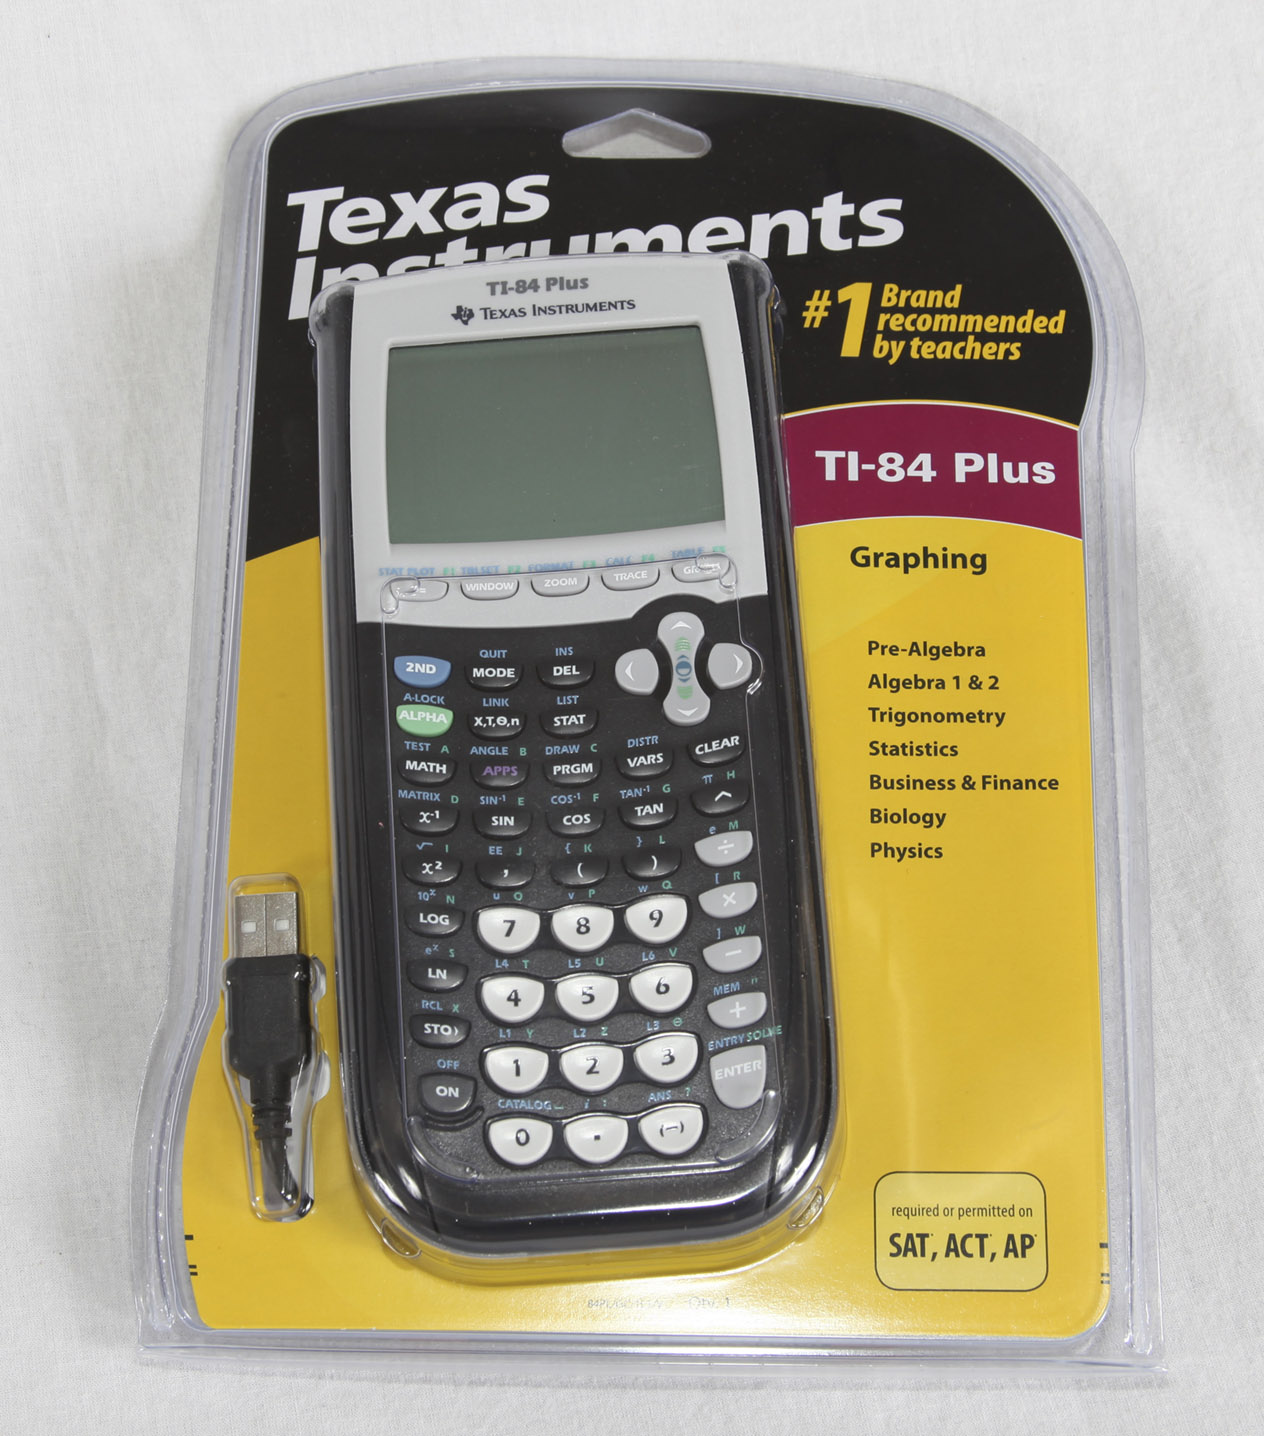 how to get pokemon on a ti-84 plus calculator